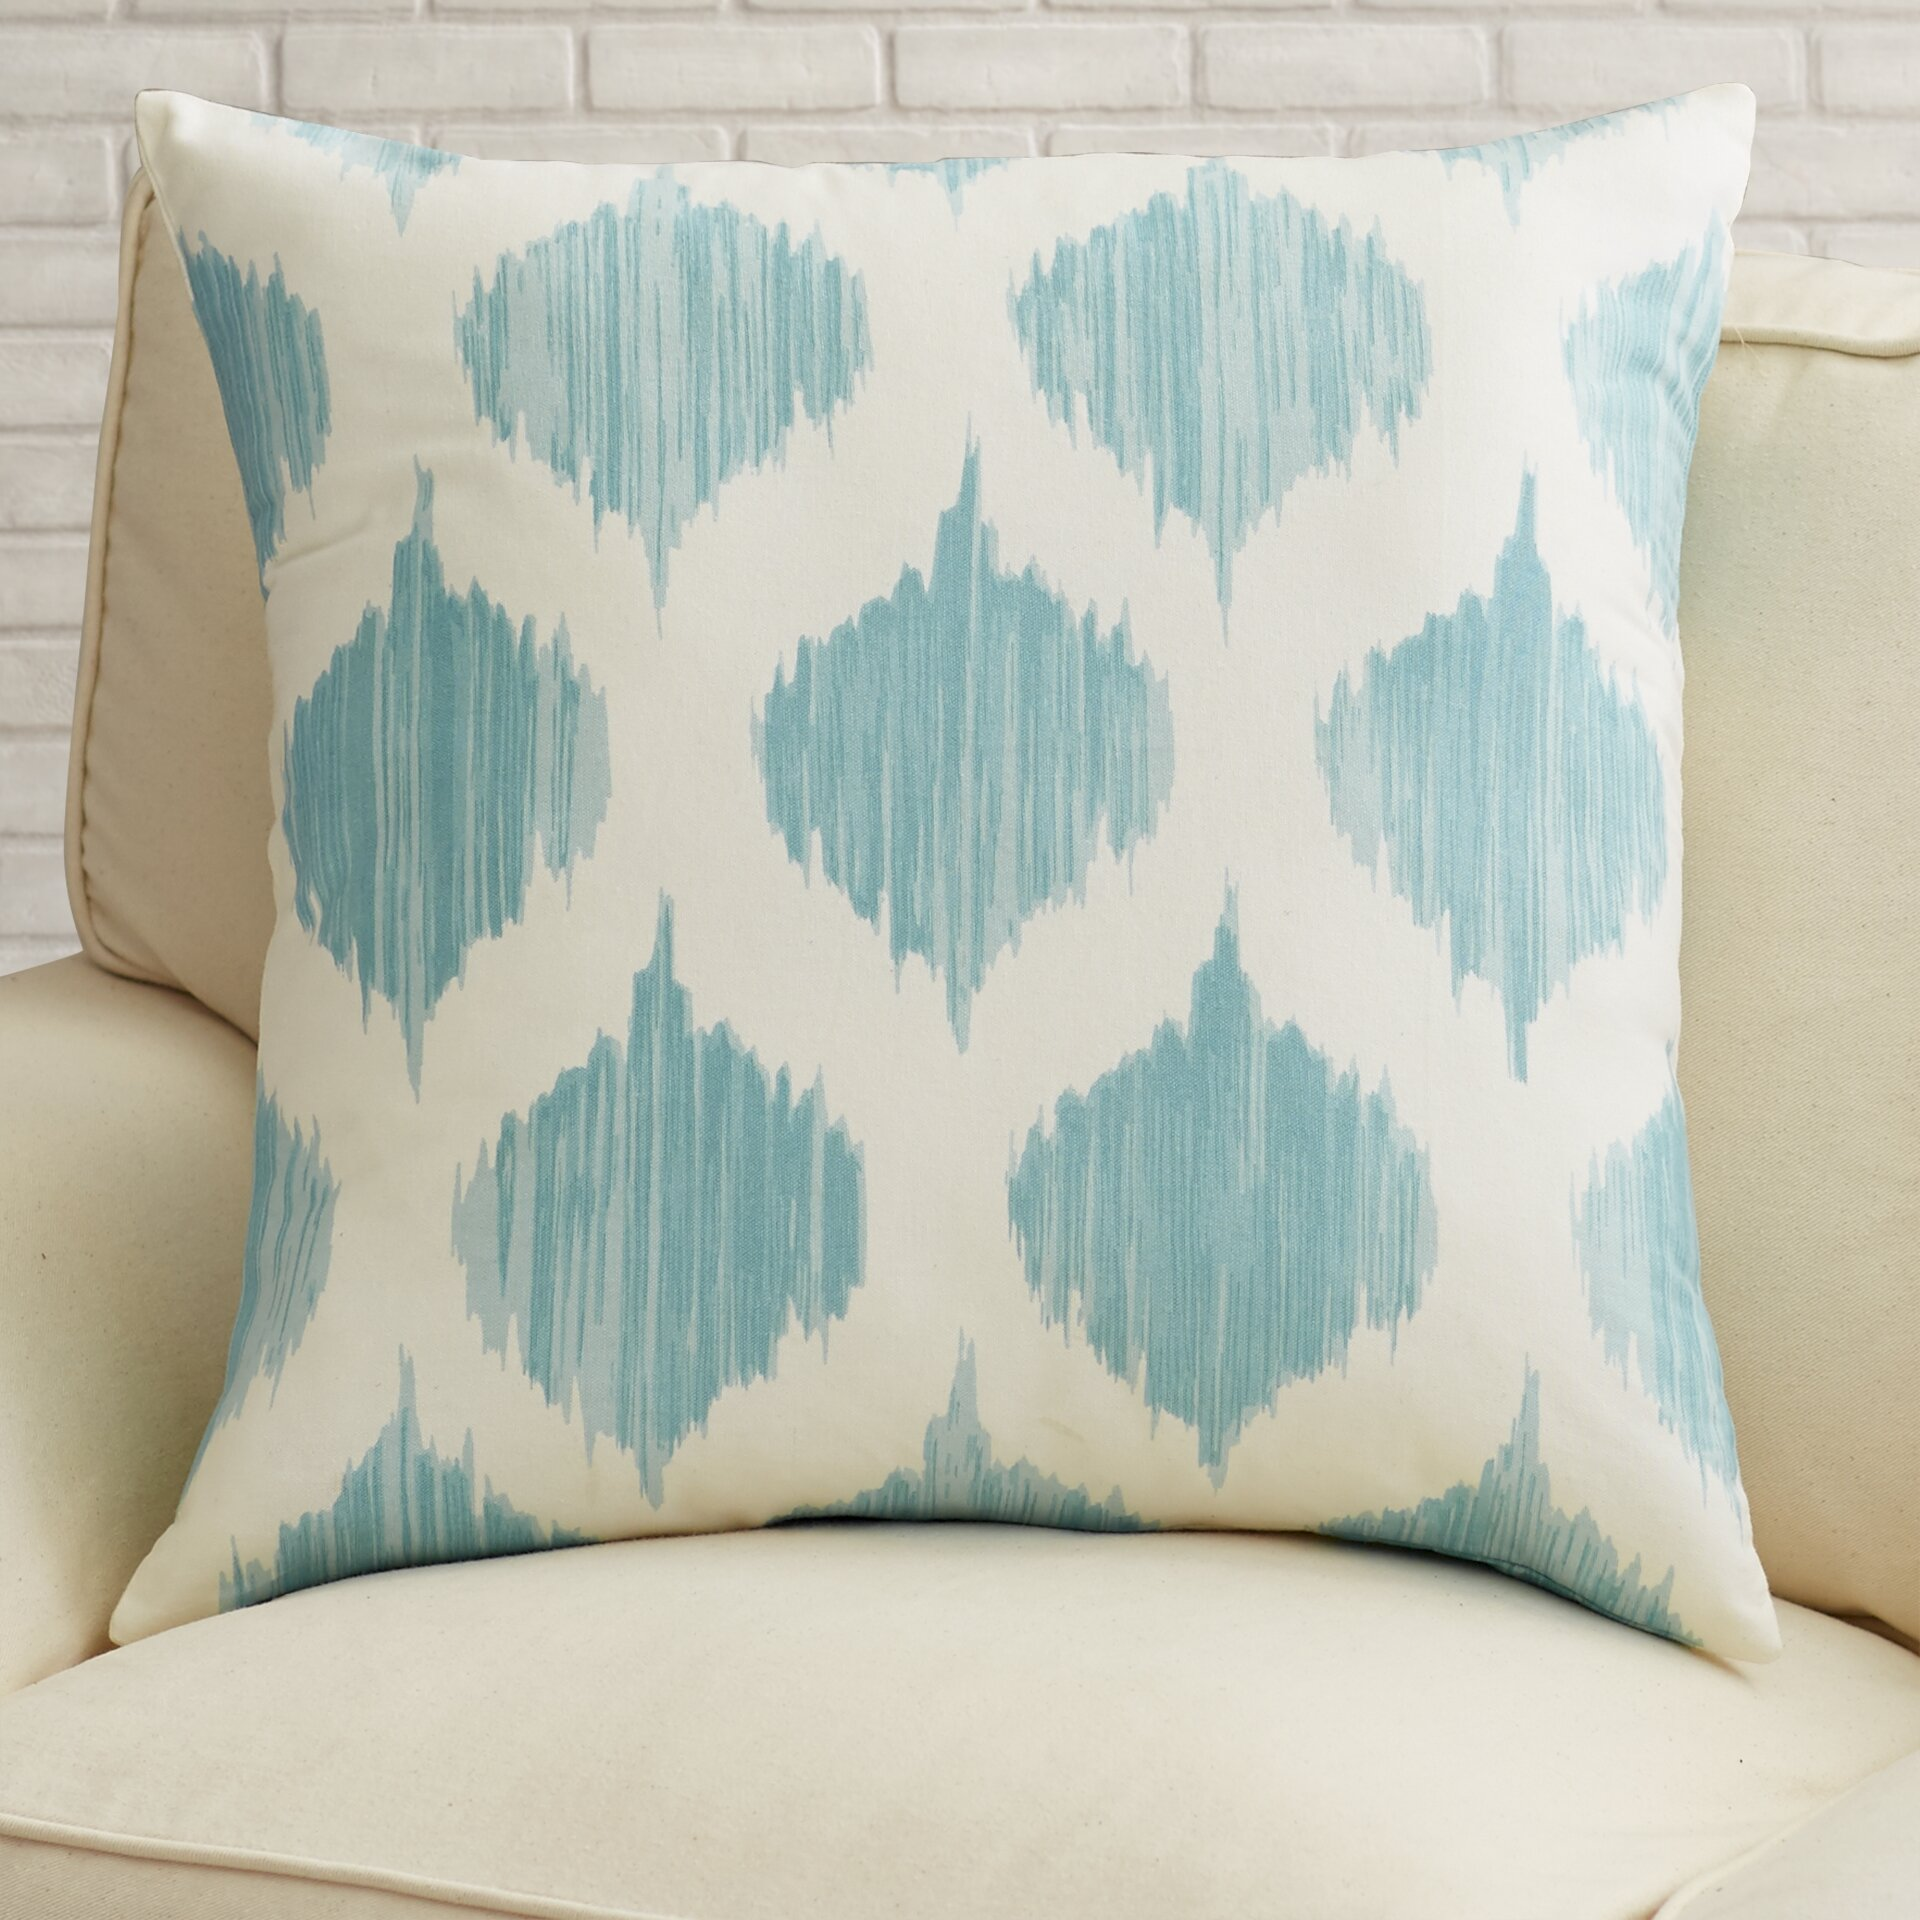 Throw Pillow Gallery : Varick Gallery Aguilar Cotton Throw Pillow & Reviews Wayfair